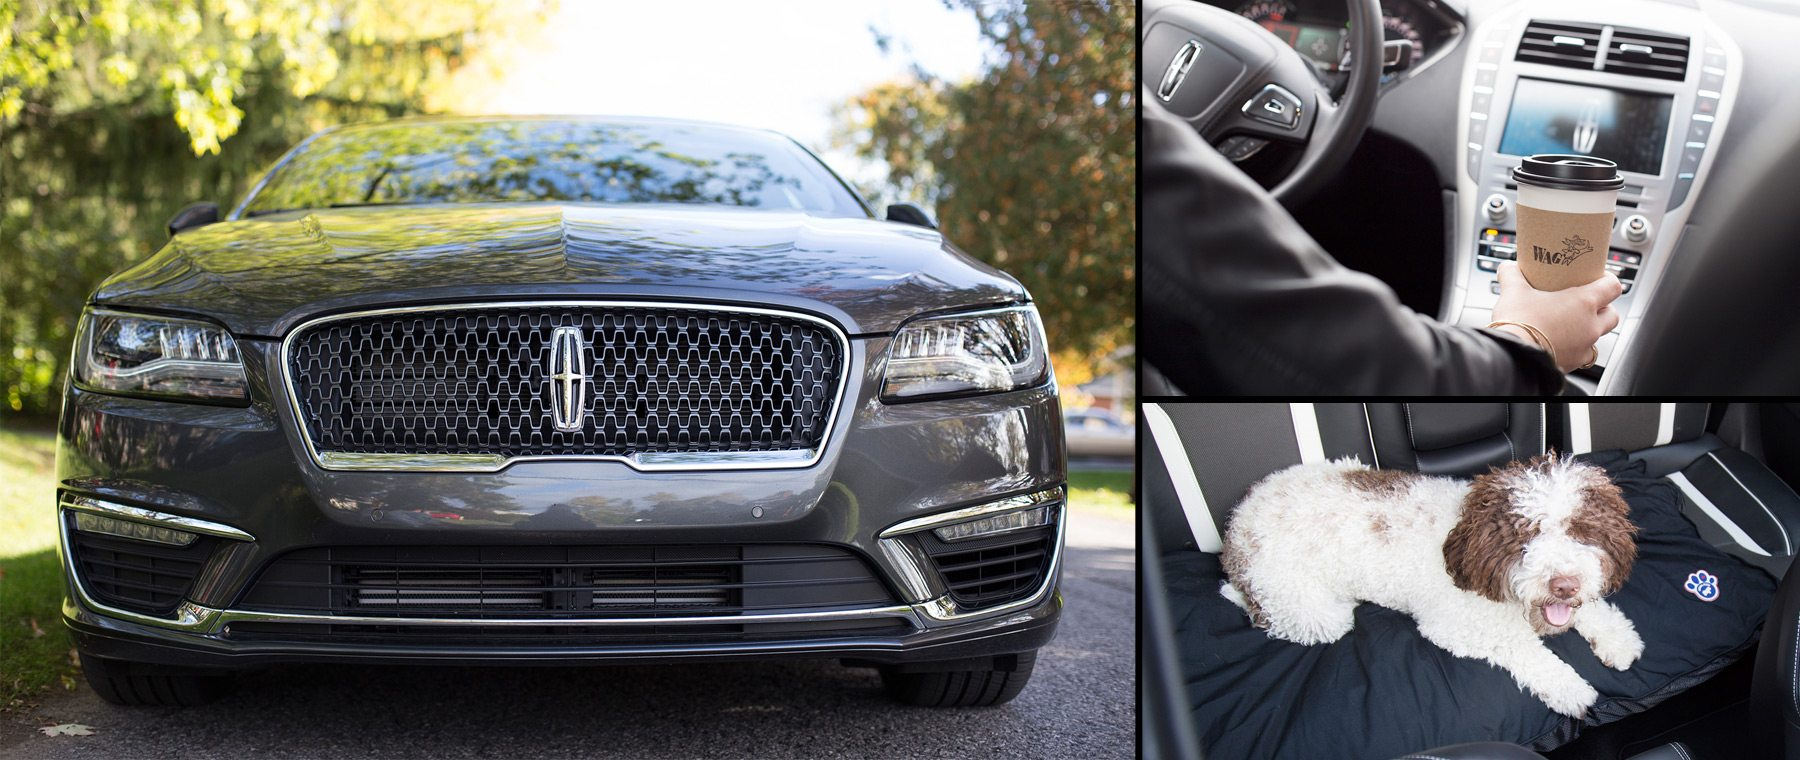 Creature Comforts with the Lincoln MKZ